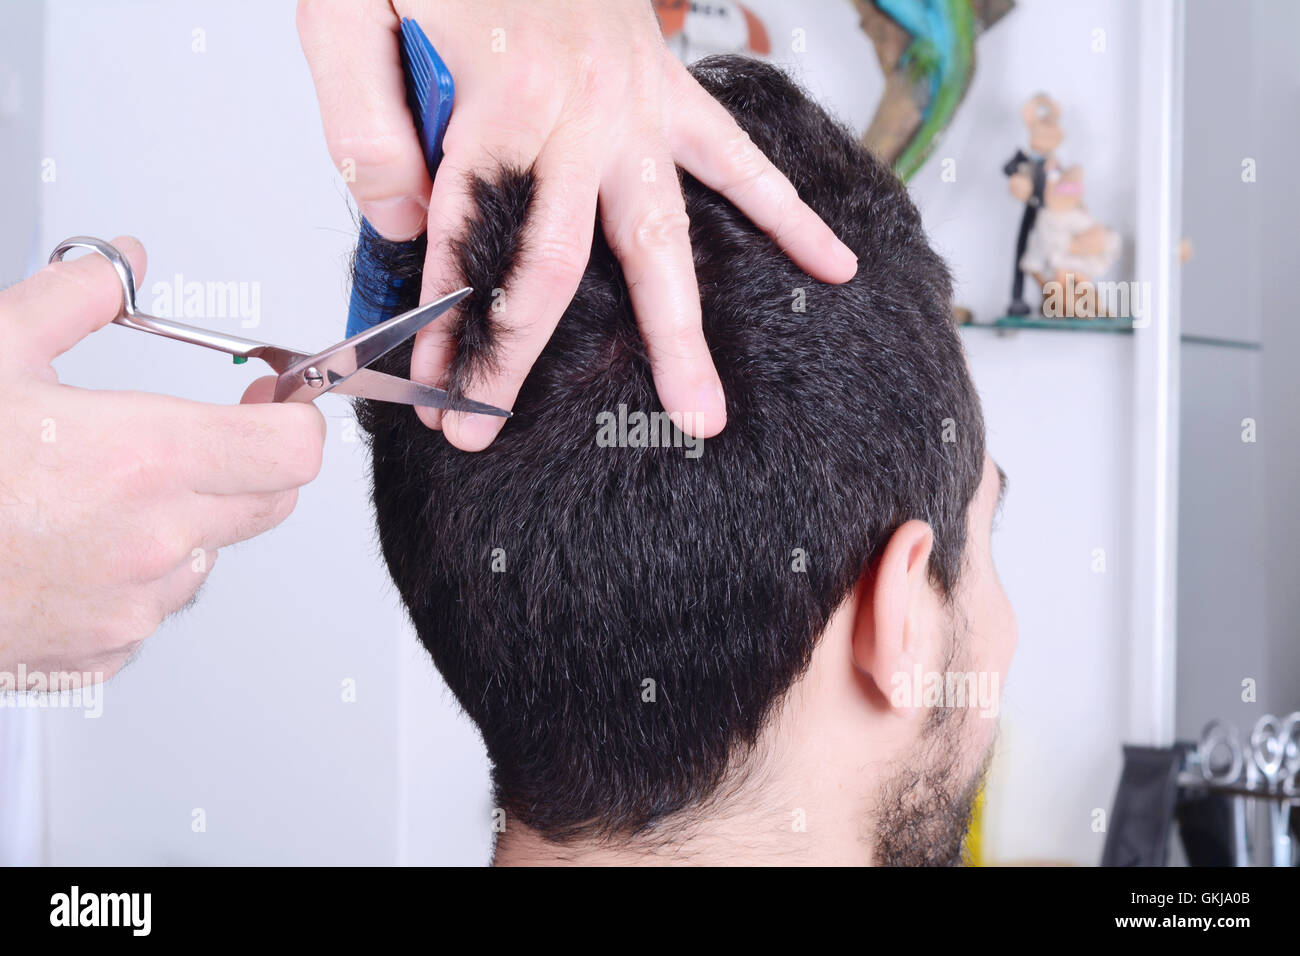 Close Up Of Young Man Having A Haircut With Scissors Stock Photo